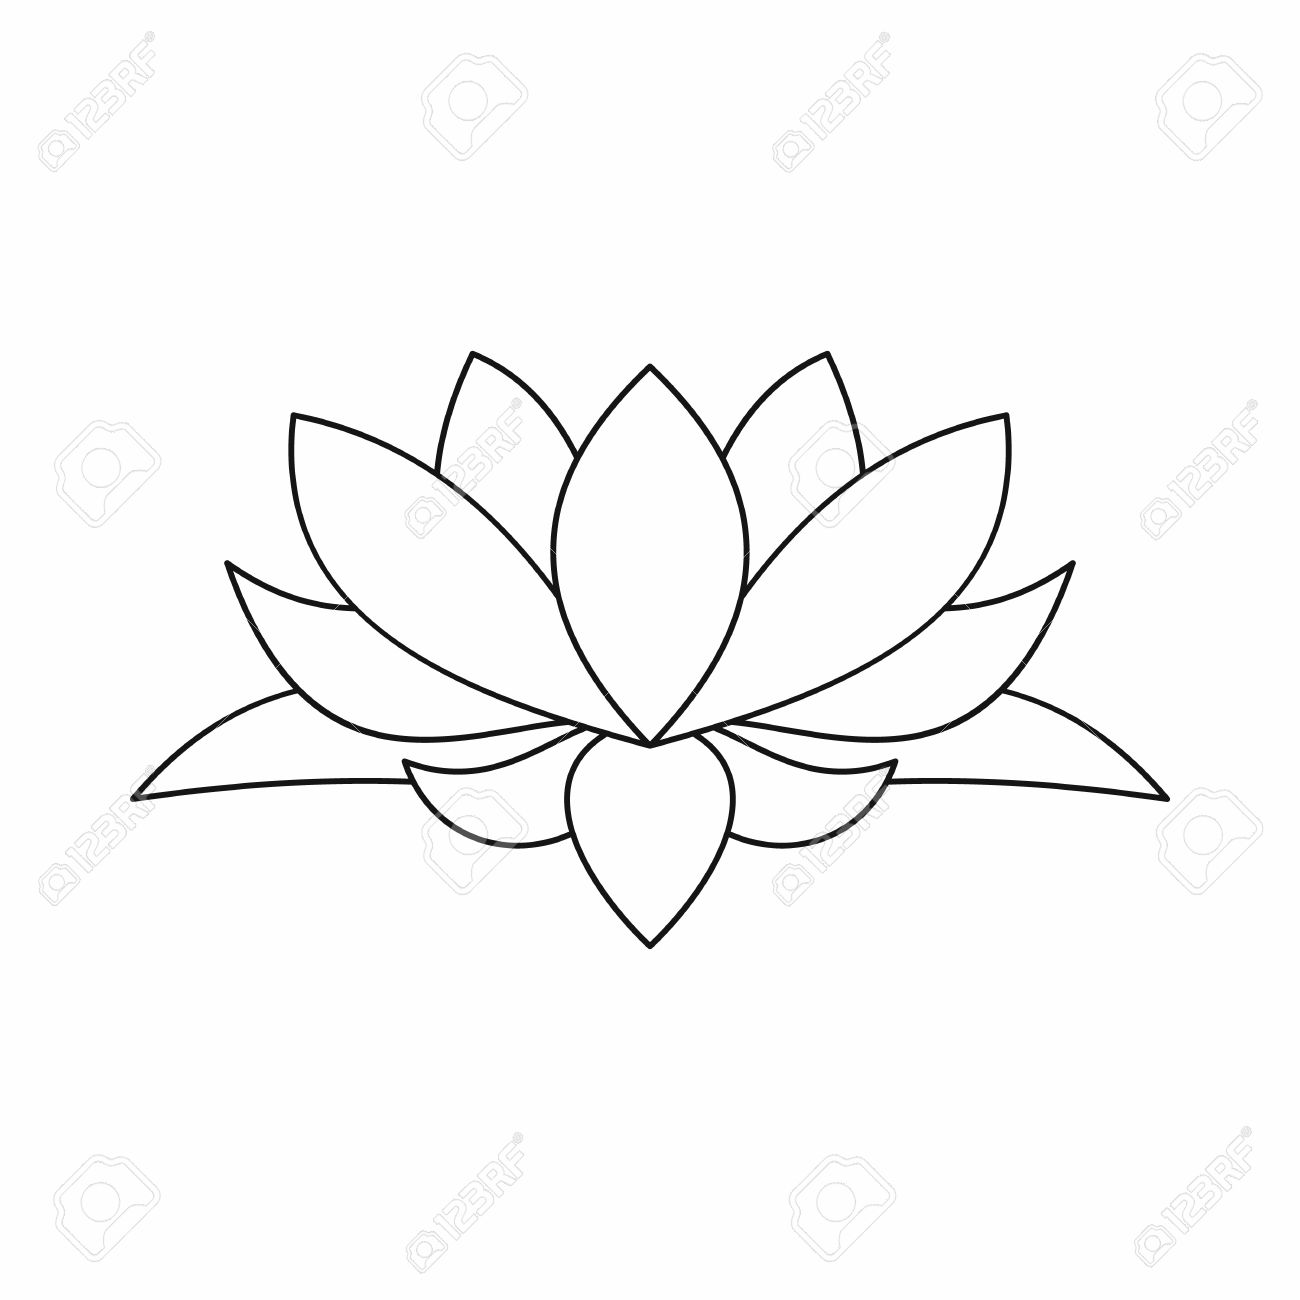 Flower drawing ideas flower drawing of pencil drawing best rose lotus flower outline best lotus flower drawings ideas on lotus flower icon in outline style izmirmasajfo Images